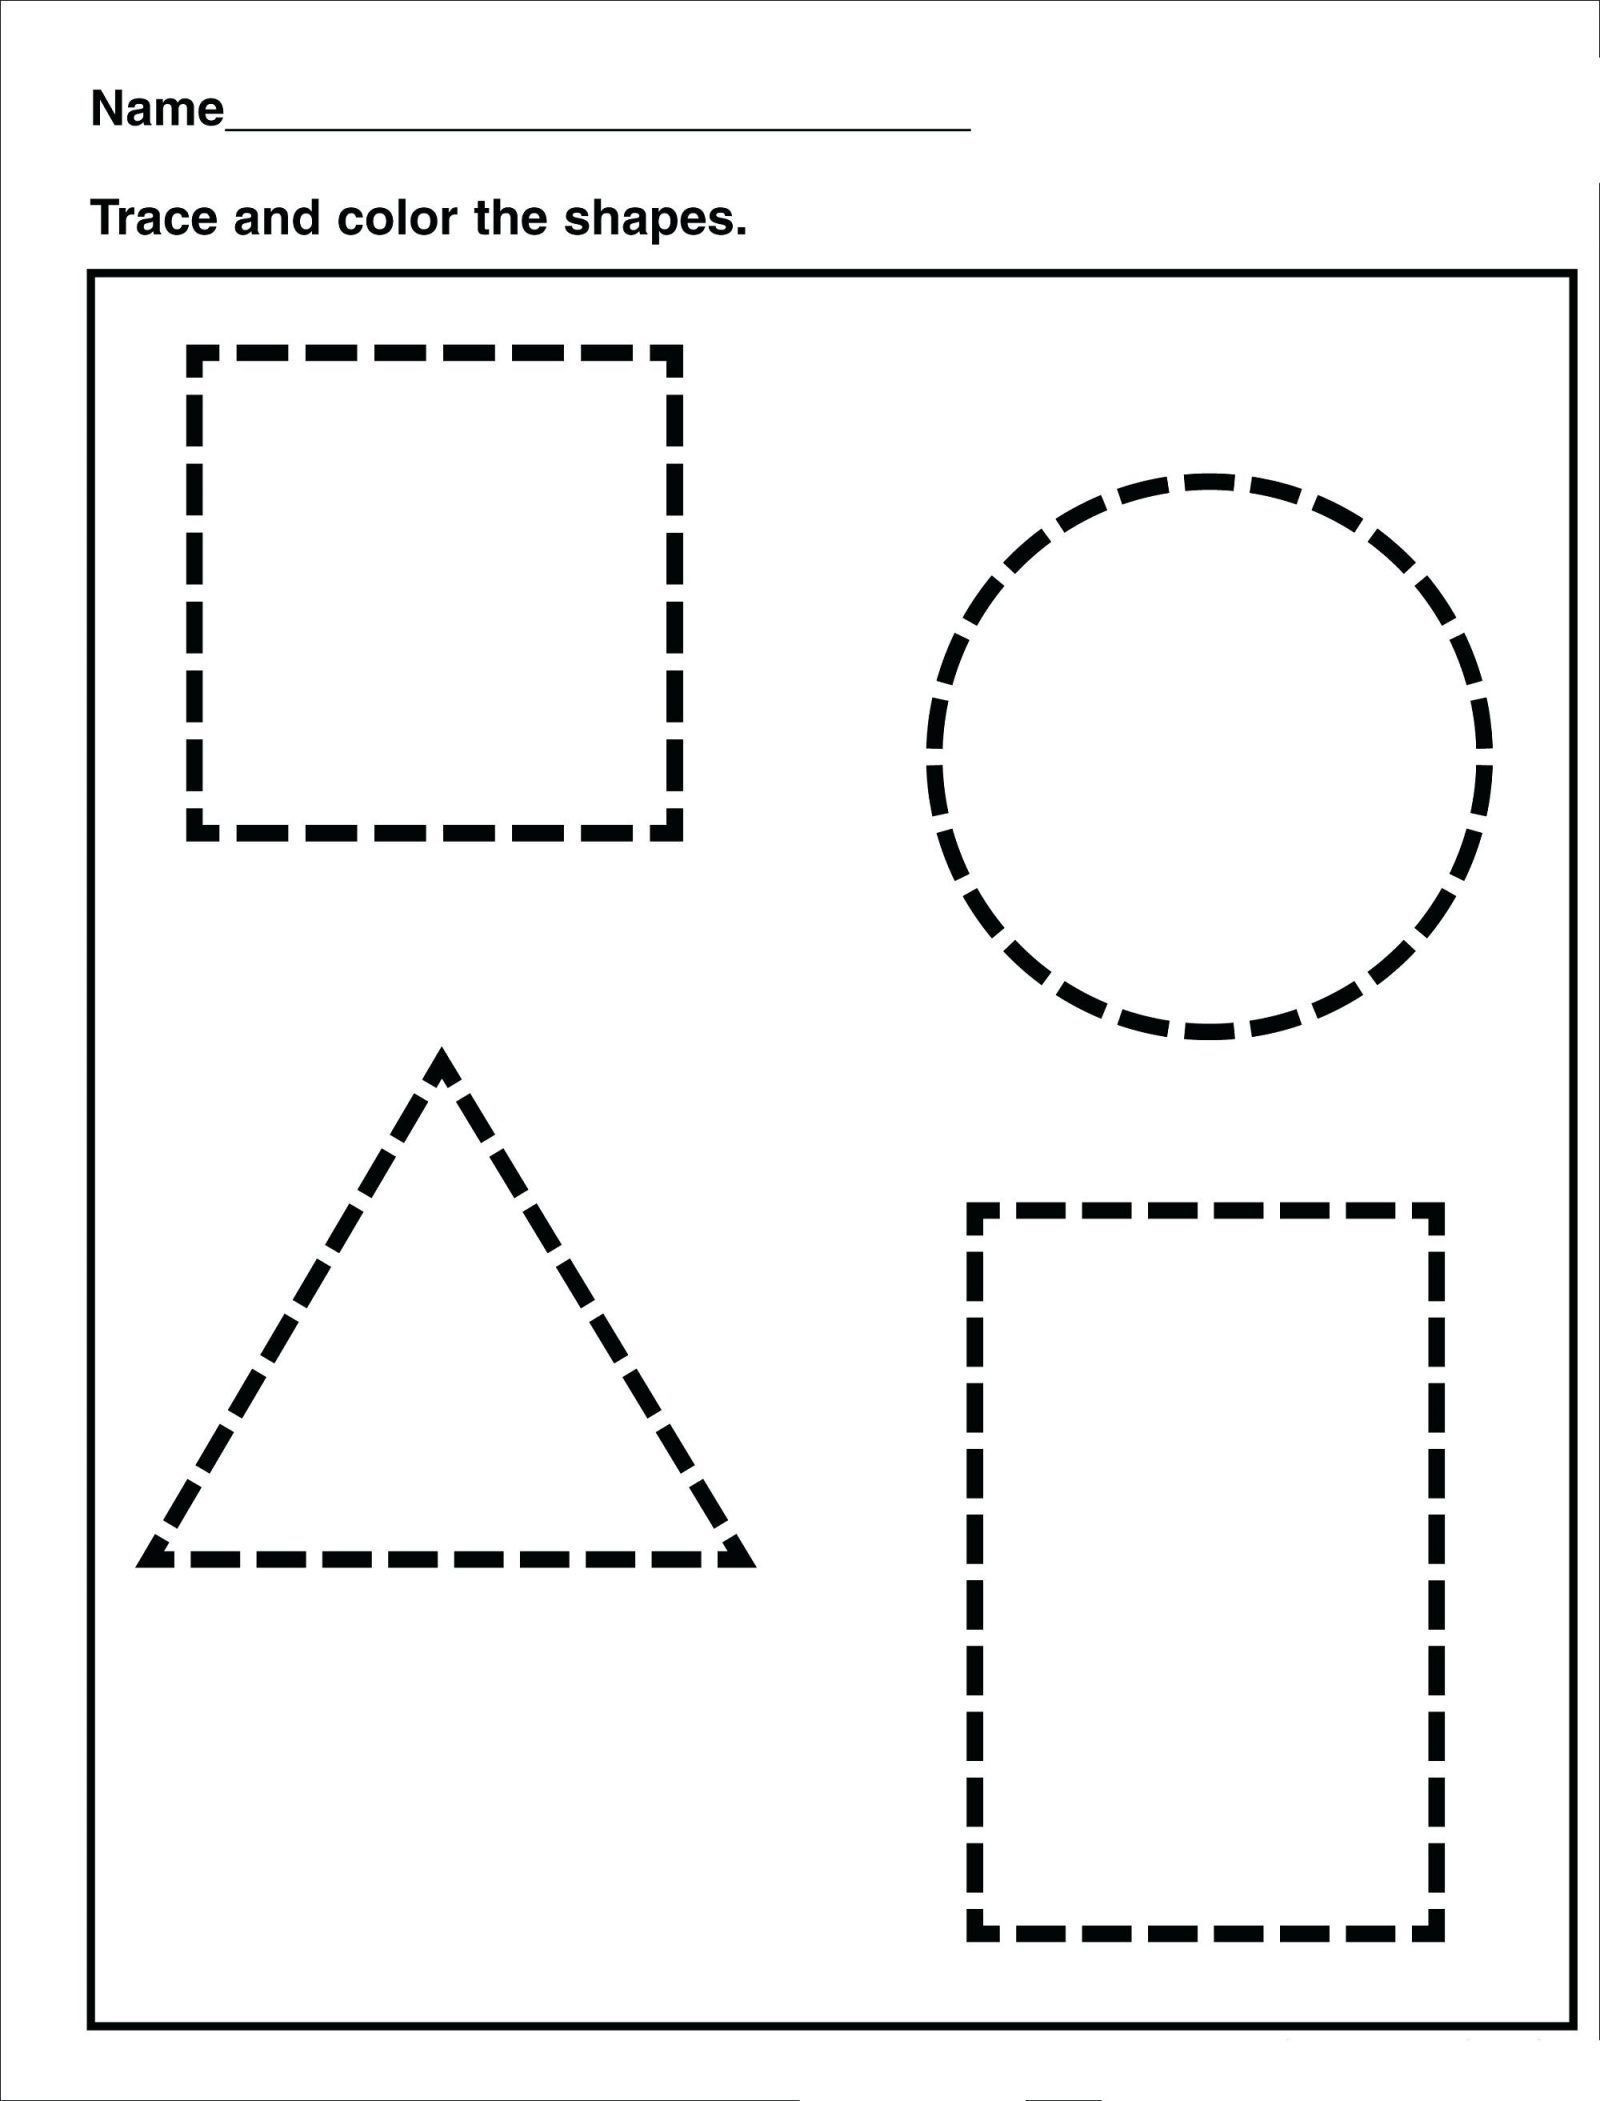 Polygon Worksheets 2nd Grade Free Shape Tracing Worksheets Activities Free